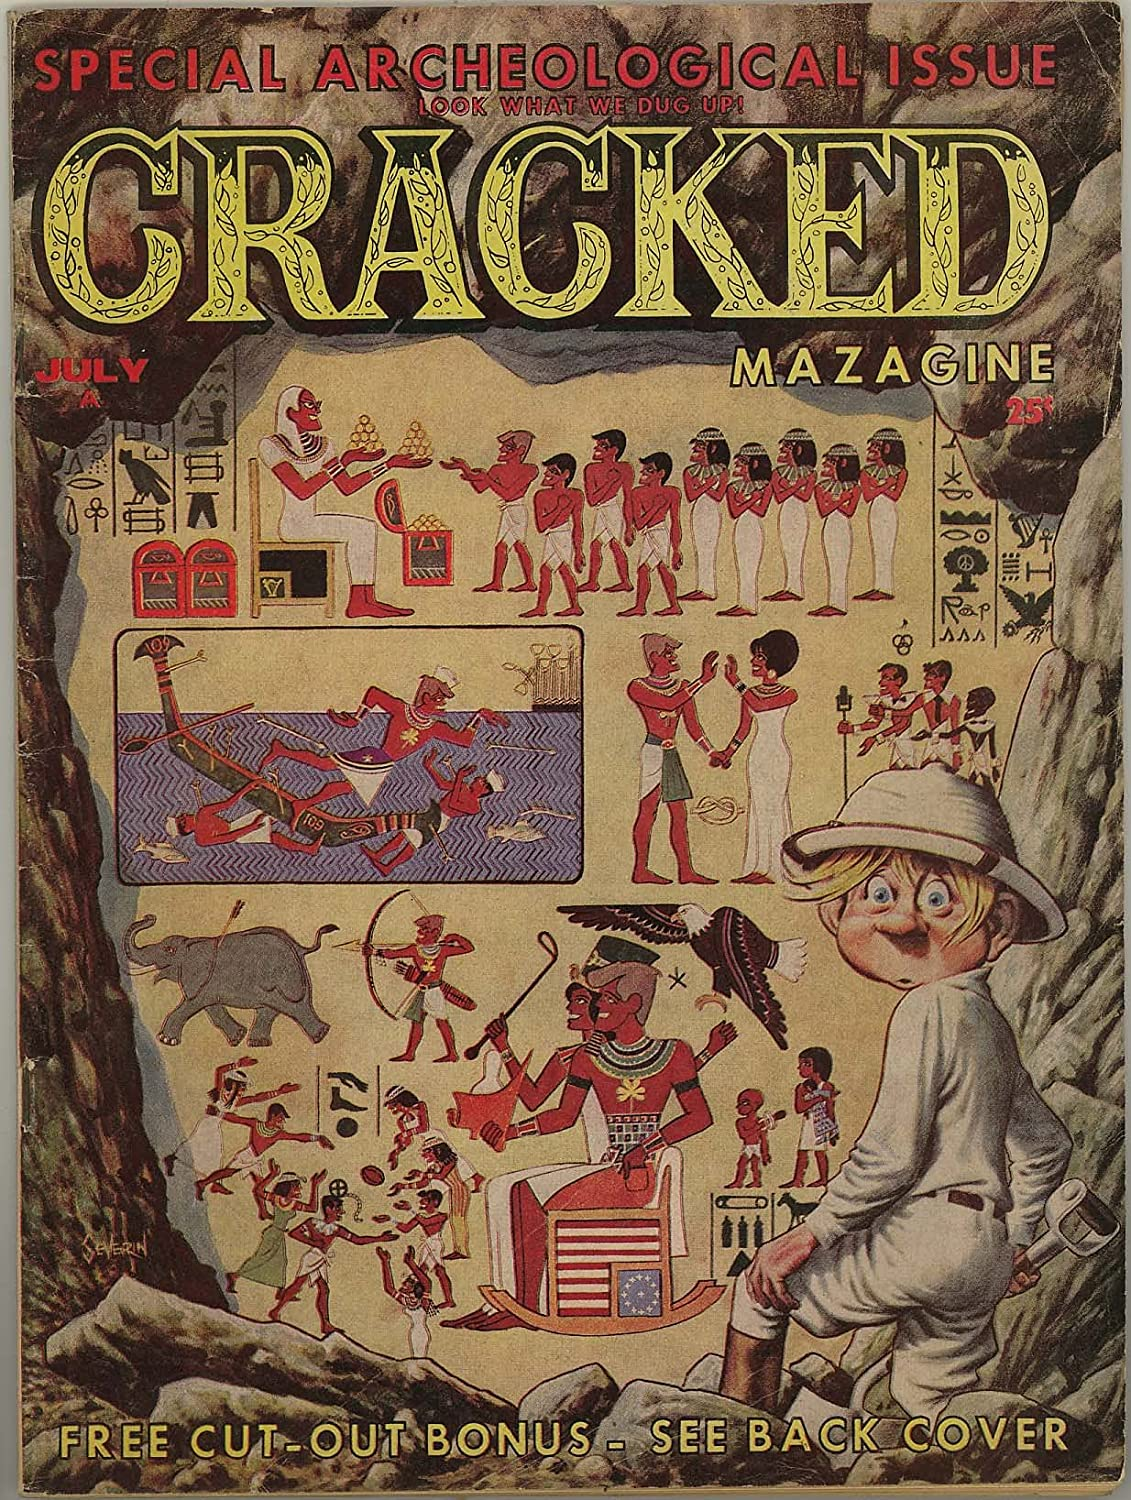 Max 59% OFF Cracked Magazine #30 specialty shop 1963 - July